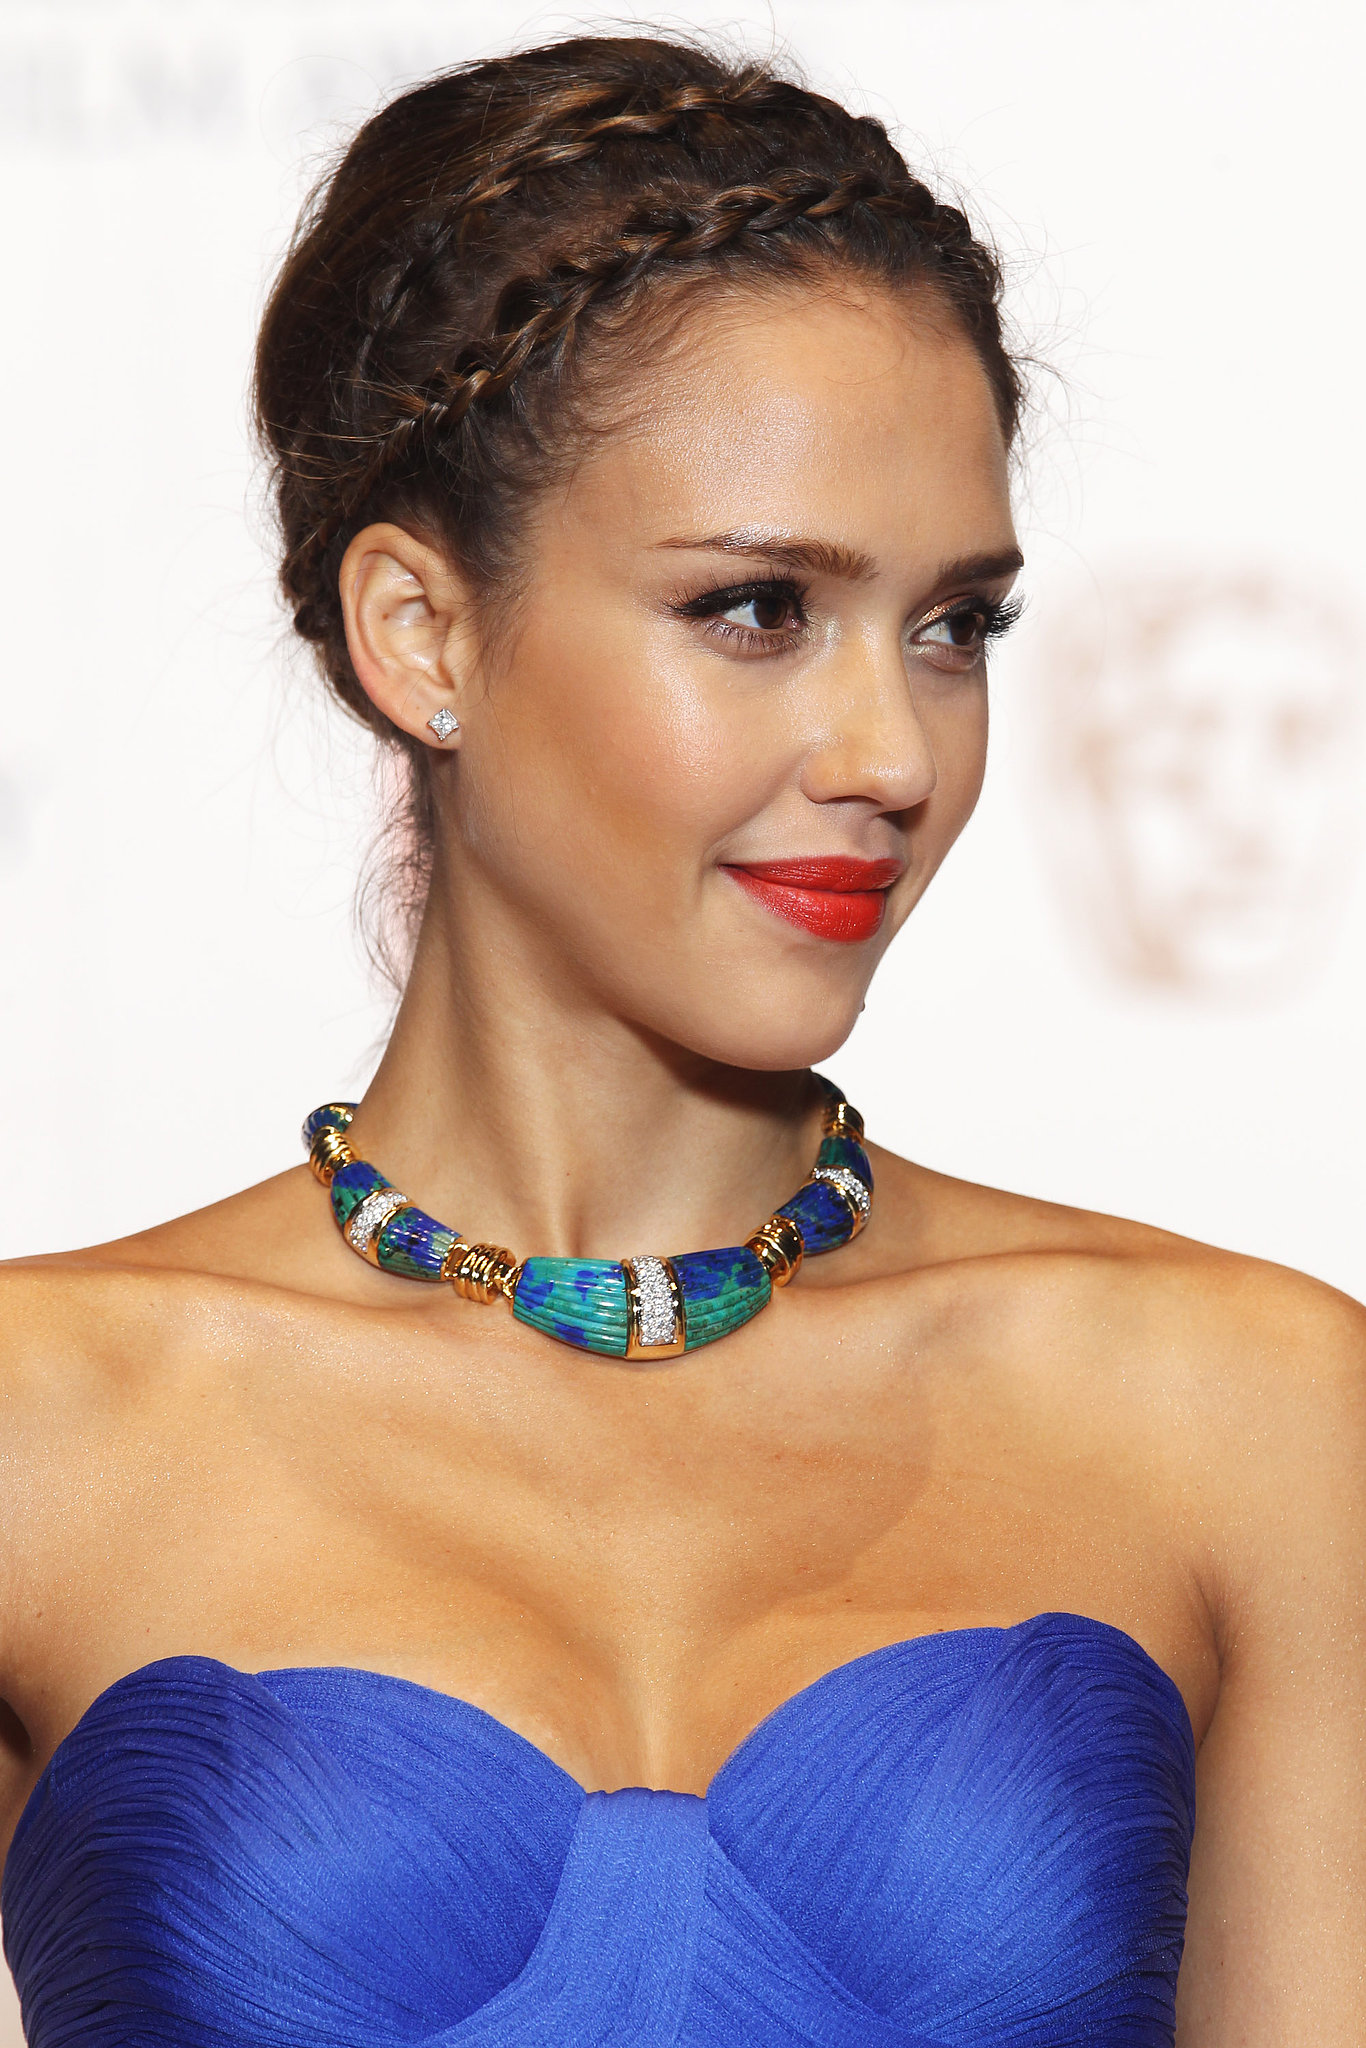 Jessica wore a playful braided style at the 2011 Orange British Academy Film Awards. Her makeup featured orange lipstick to complement her bright blue dress.